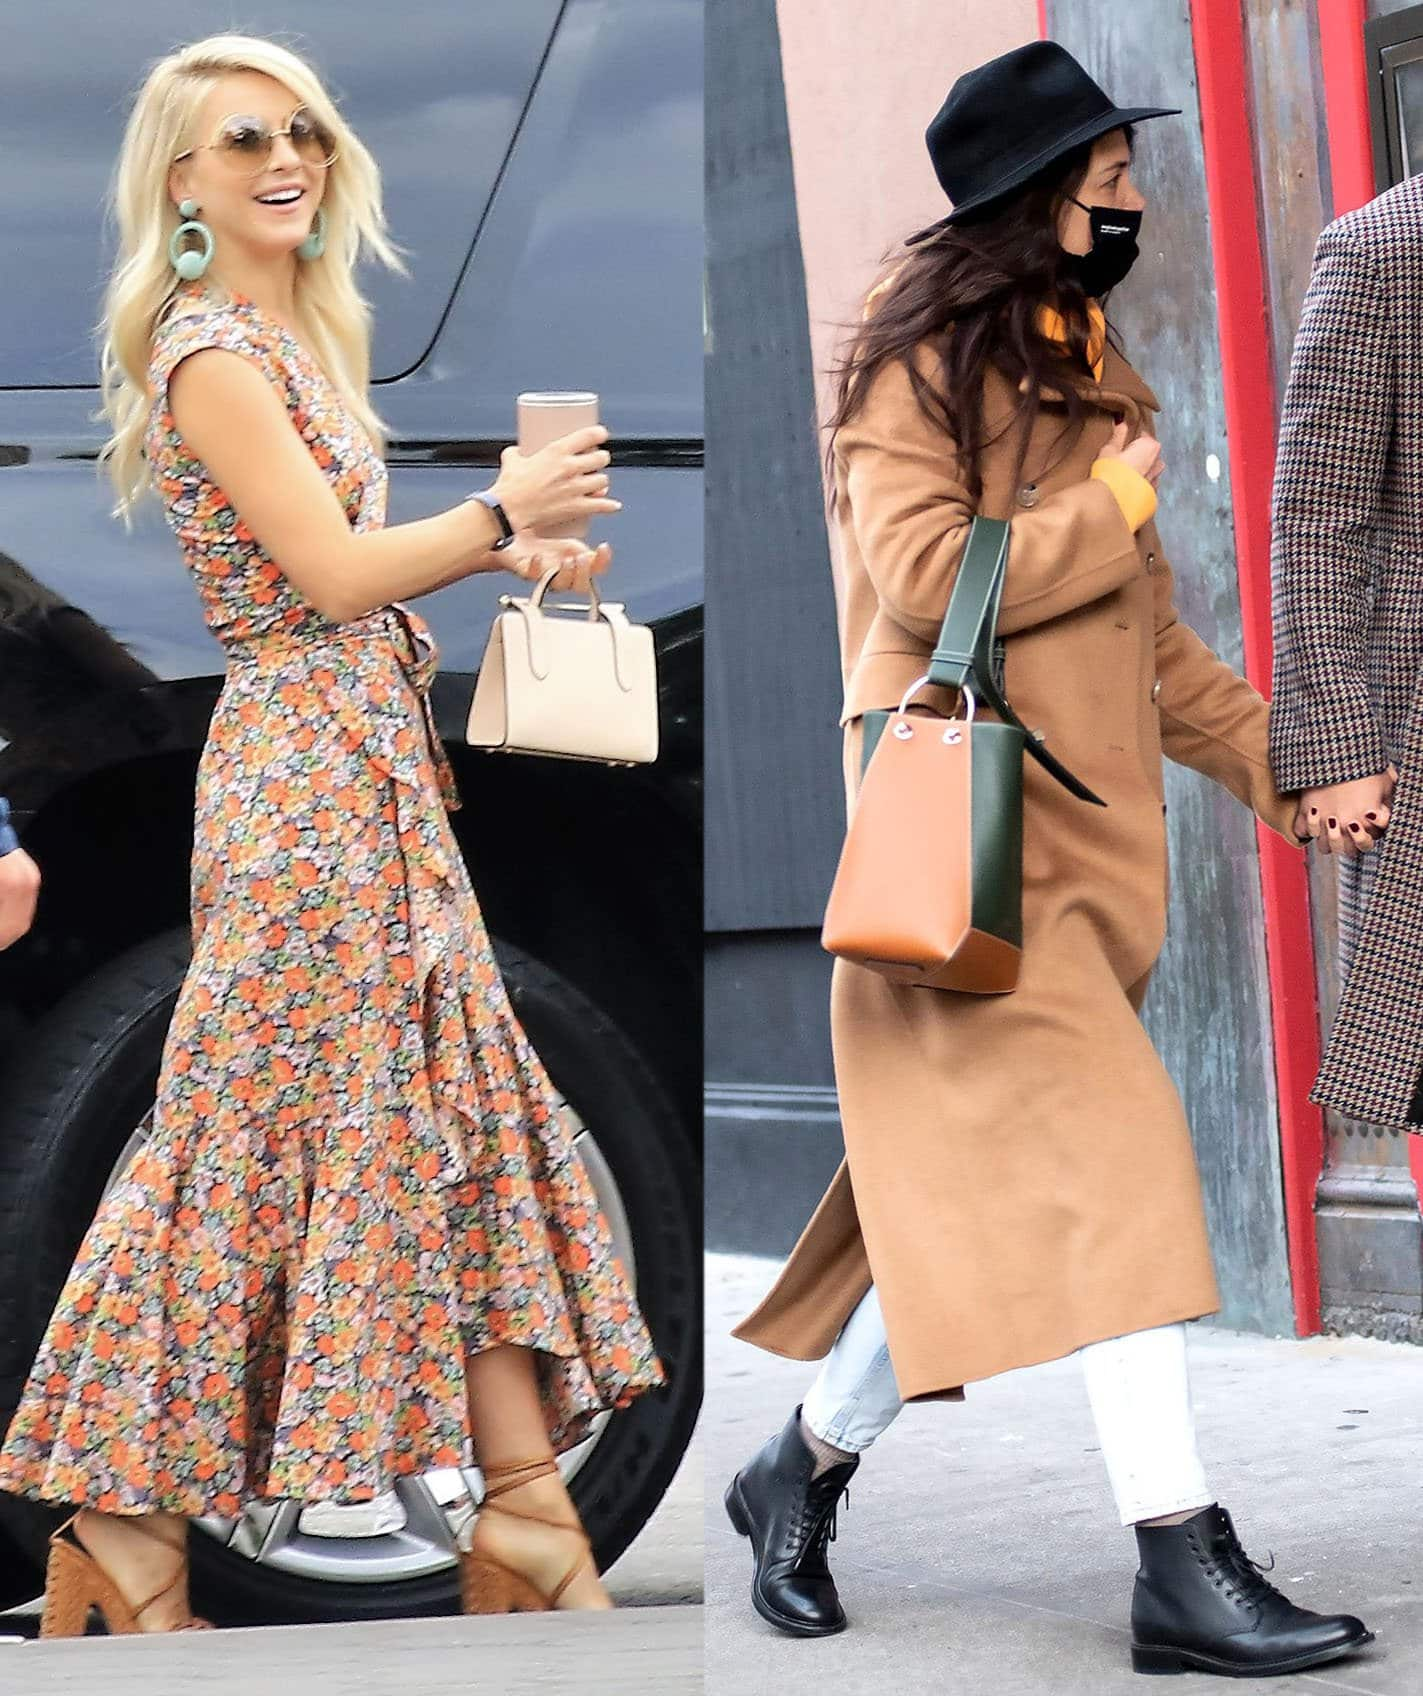 Julianne Hough and Katie Holmes carrying the Strathberry Nano tote and Lana bag respectively